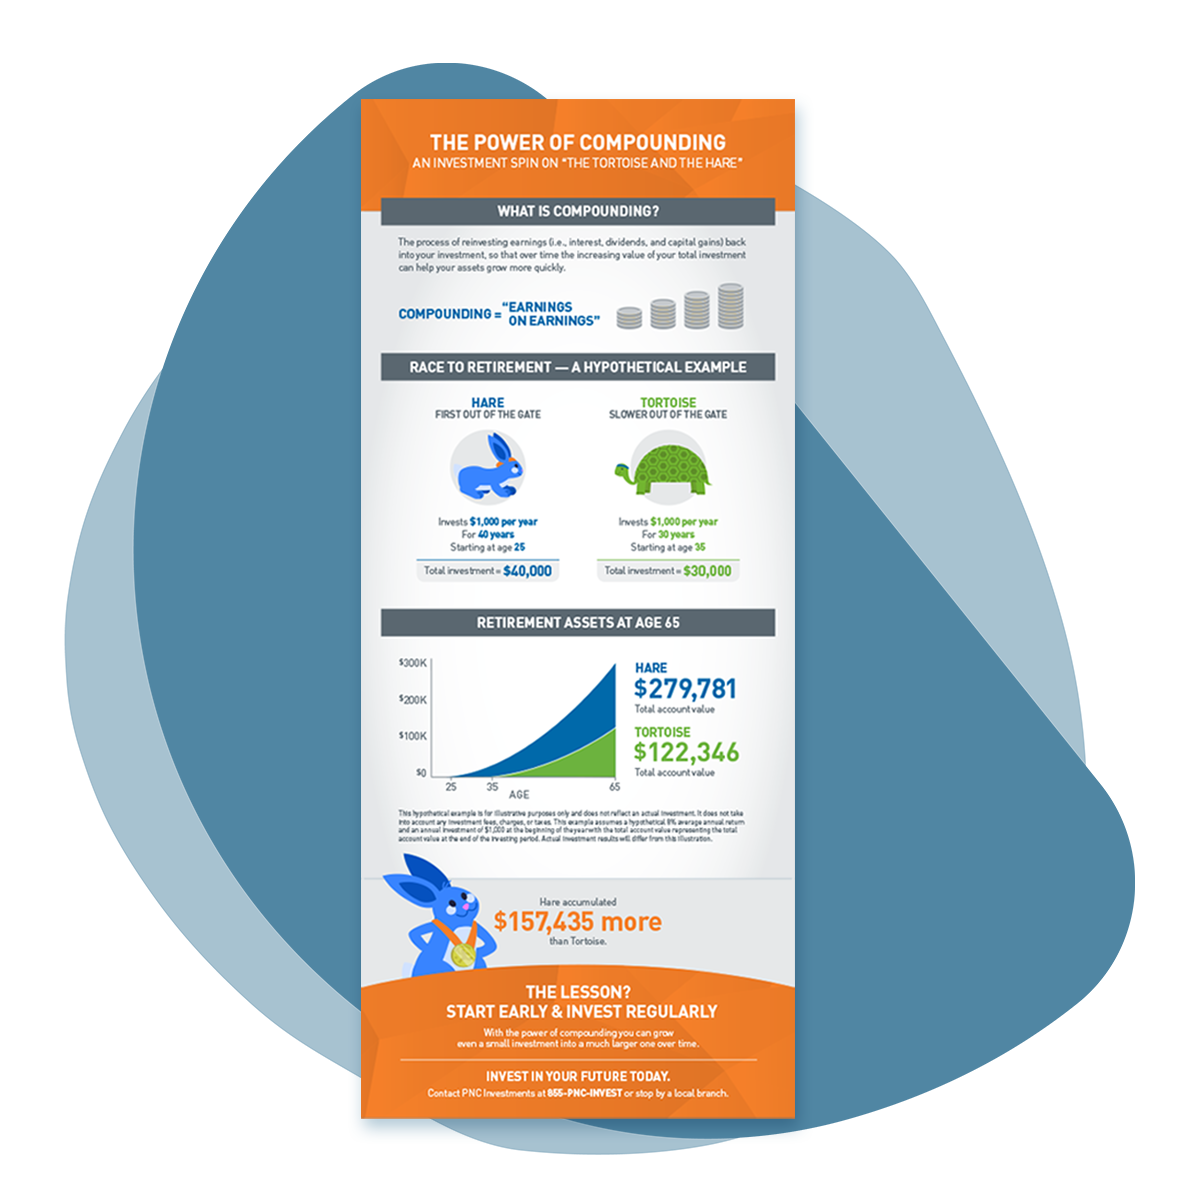 Organic blue splotch shape with an image of an infographic overlaid. The design features illustrations of a tortoise and a hare combined with retirement graphs. The main colors are orange and gray, with blue and green accents.